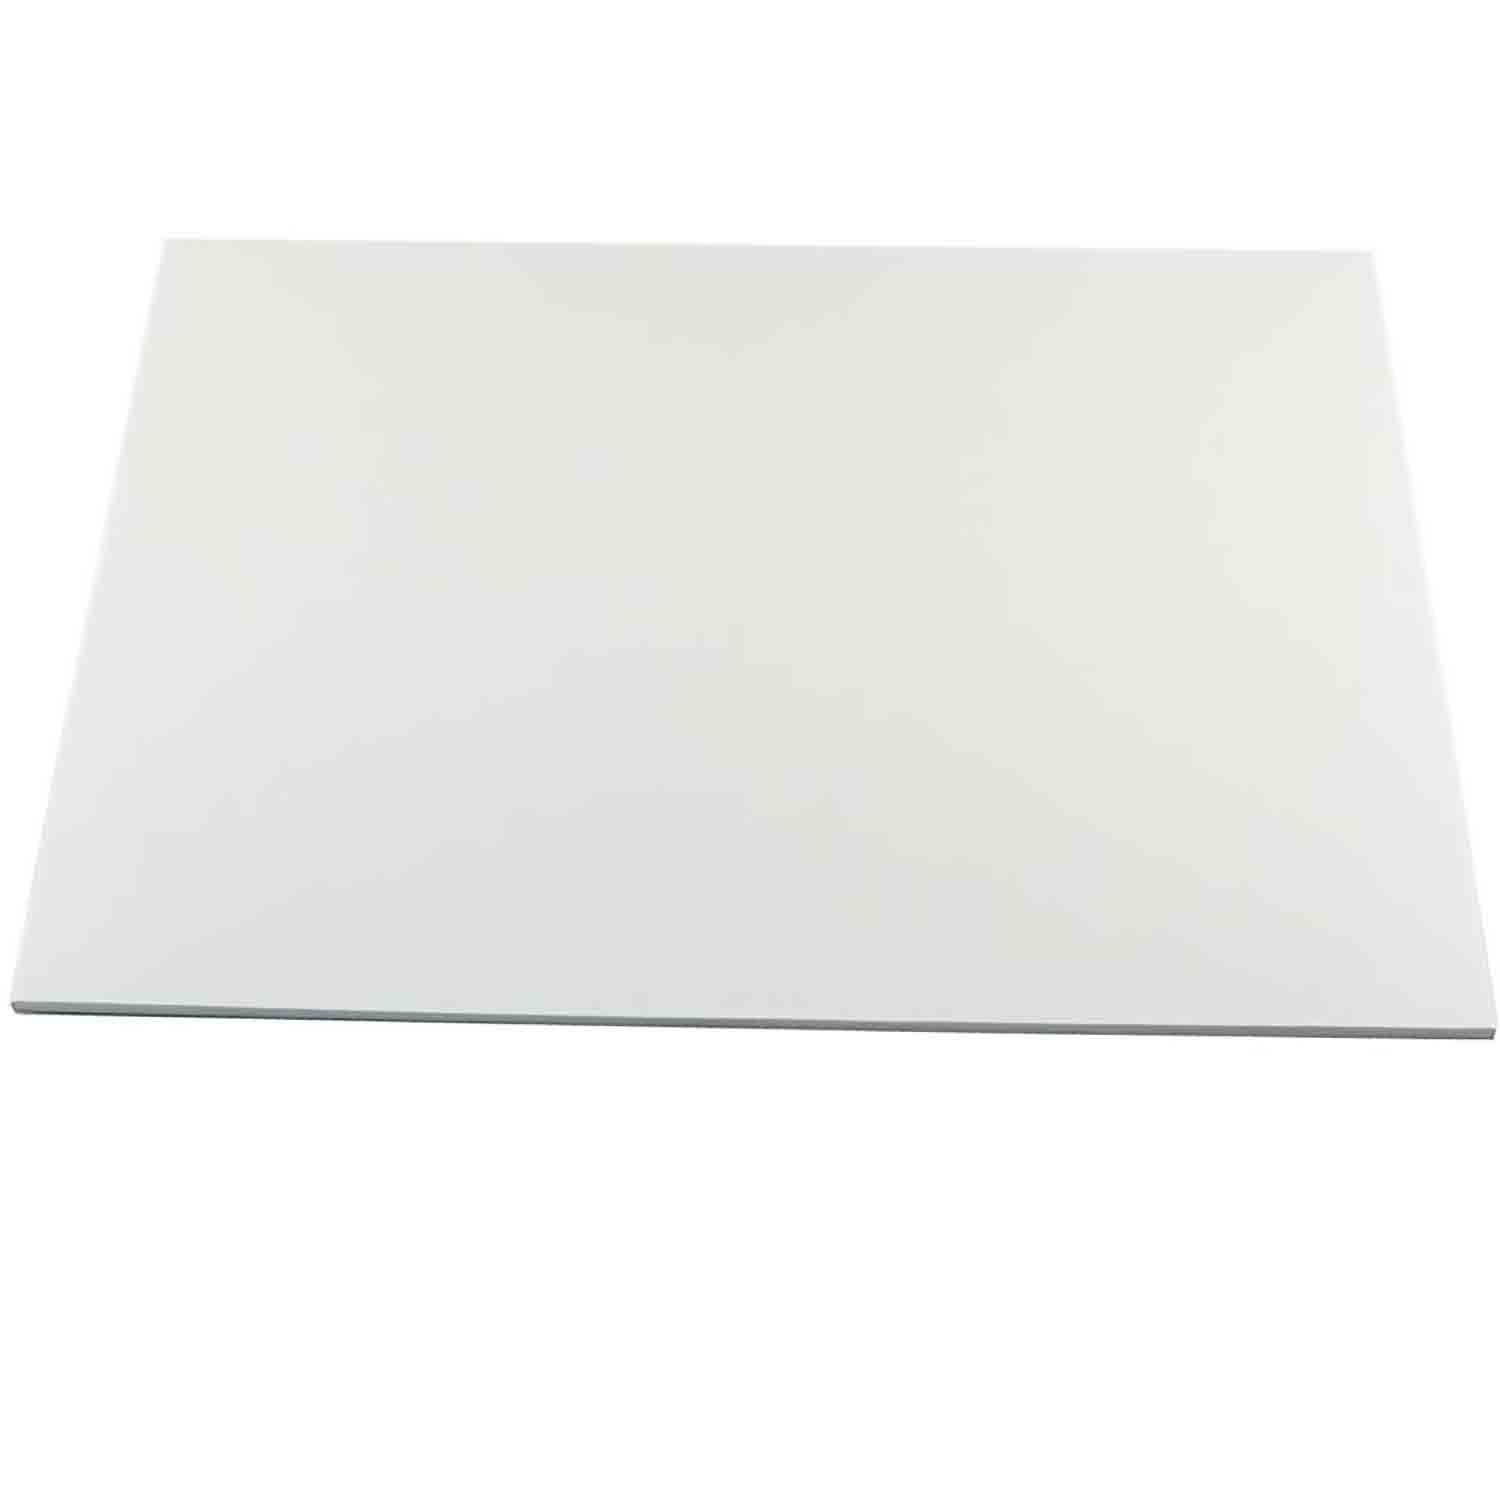 "14"" x 19"" Rectangle White Half Sheet Cake Drum - ¼"" Thick"